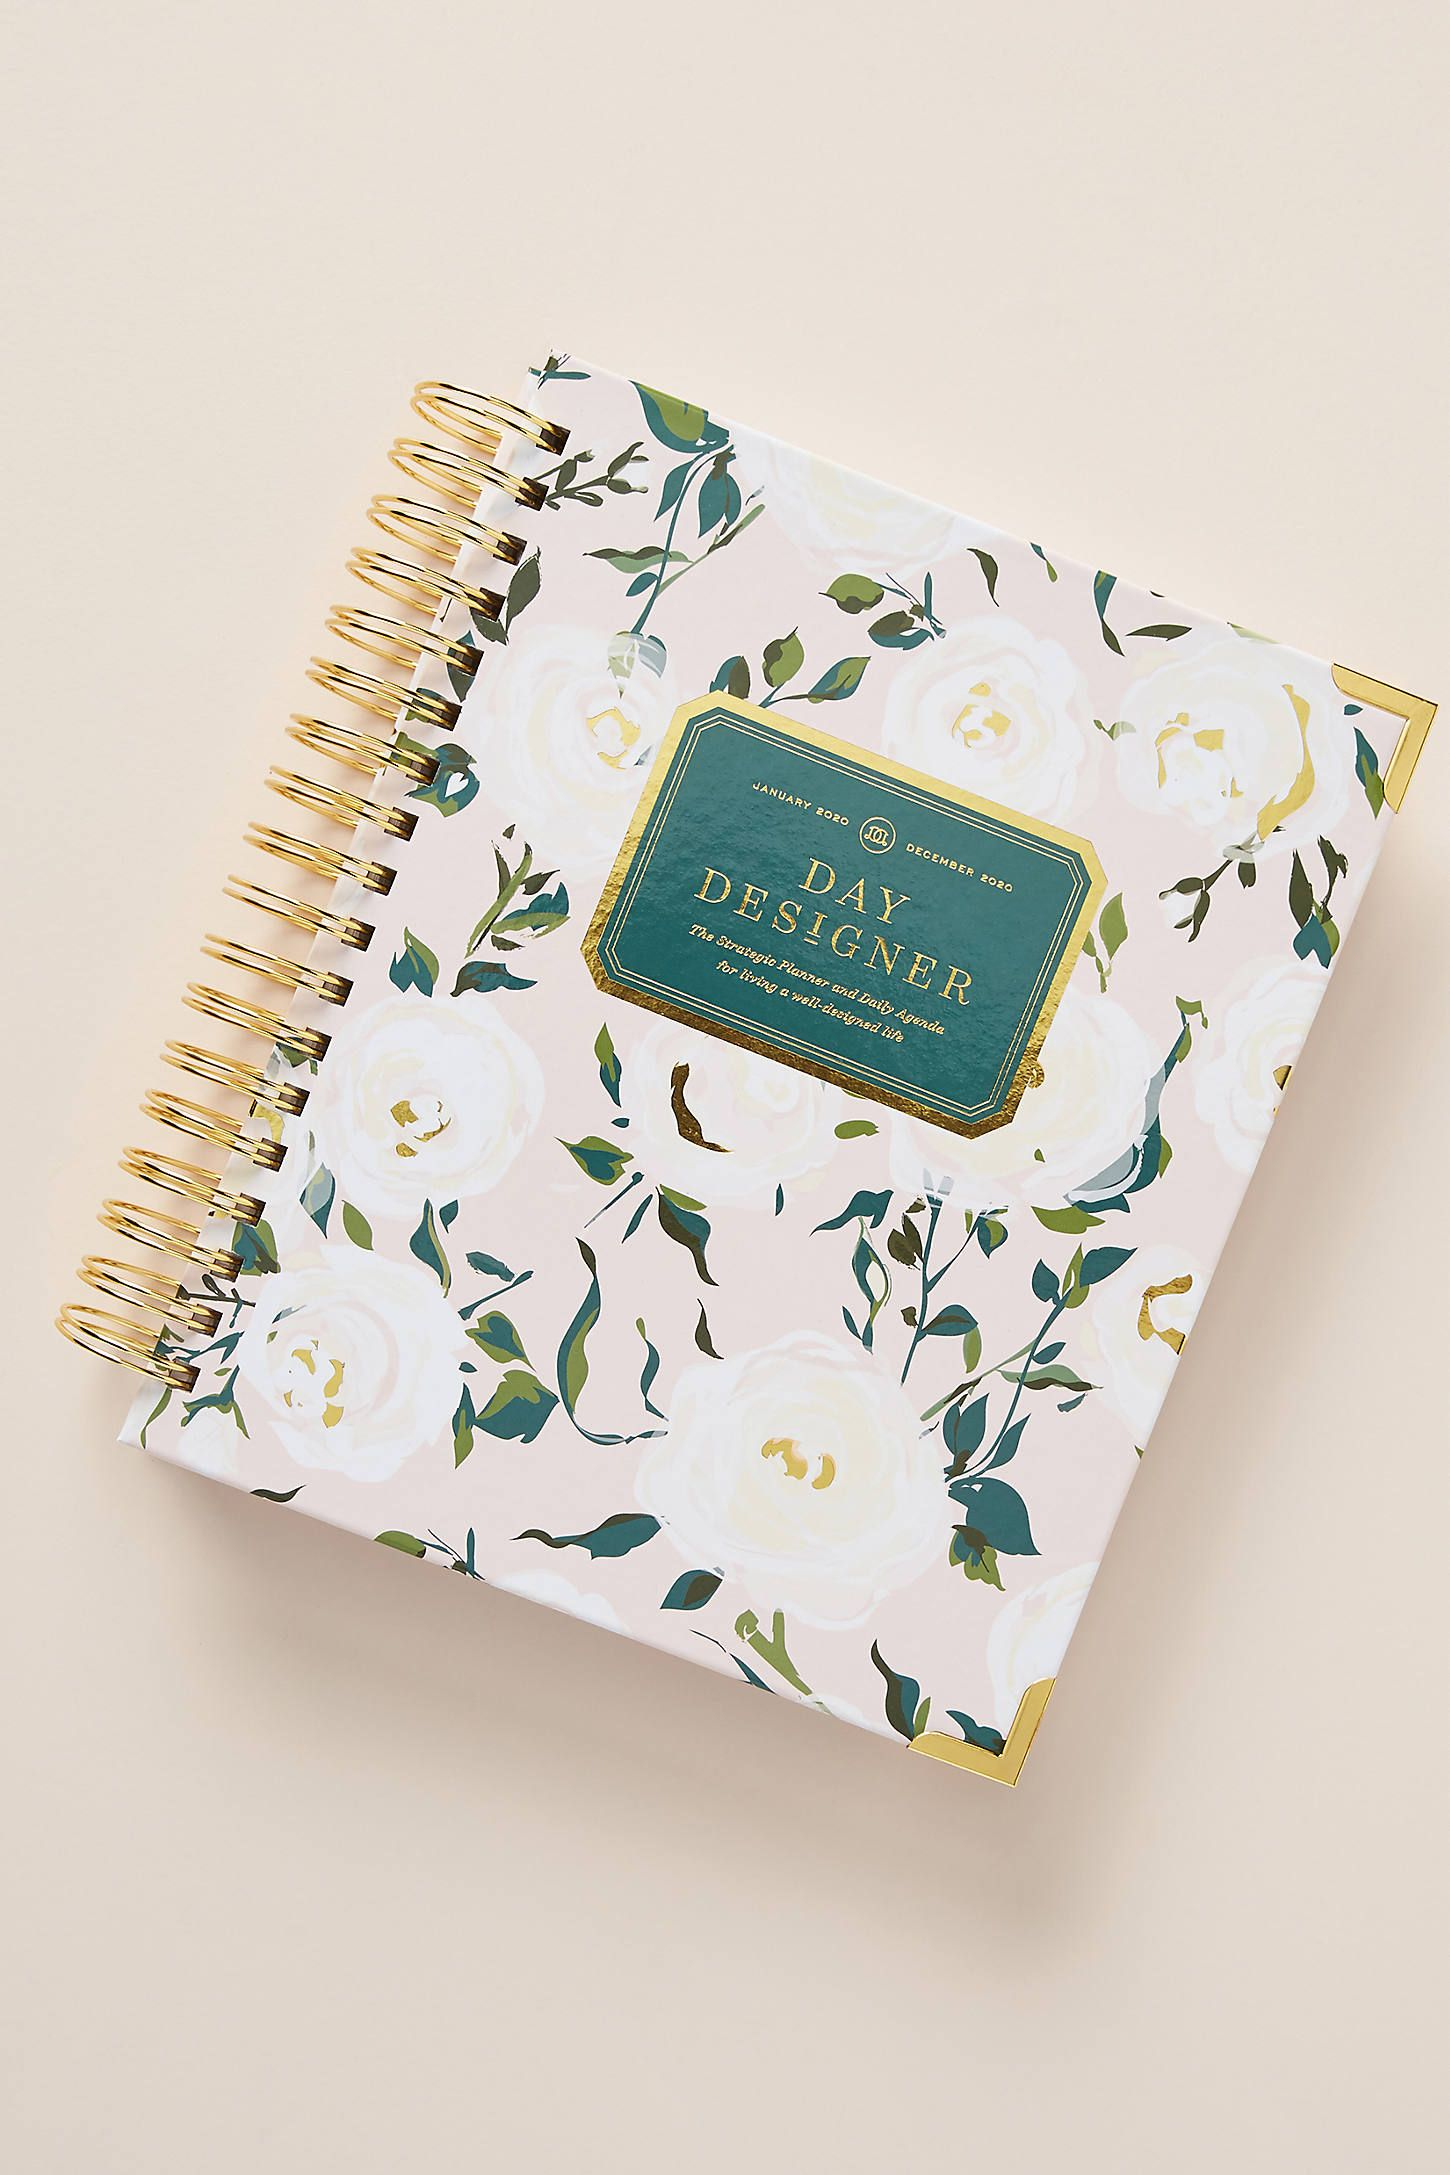 Day Designer Planner By Anthropologie In Assorted